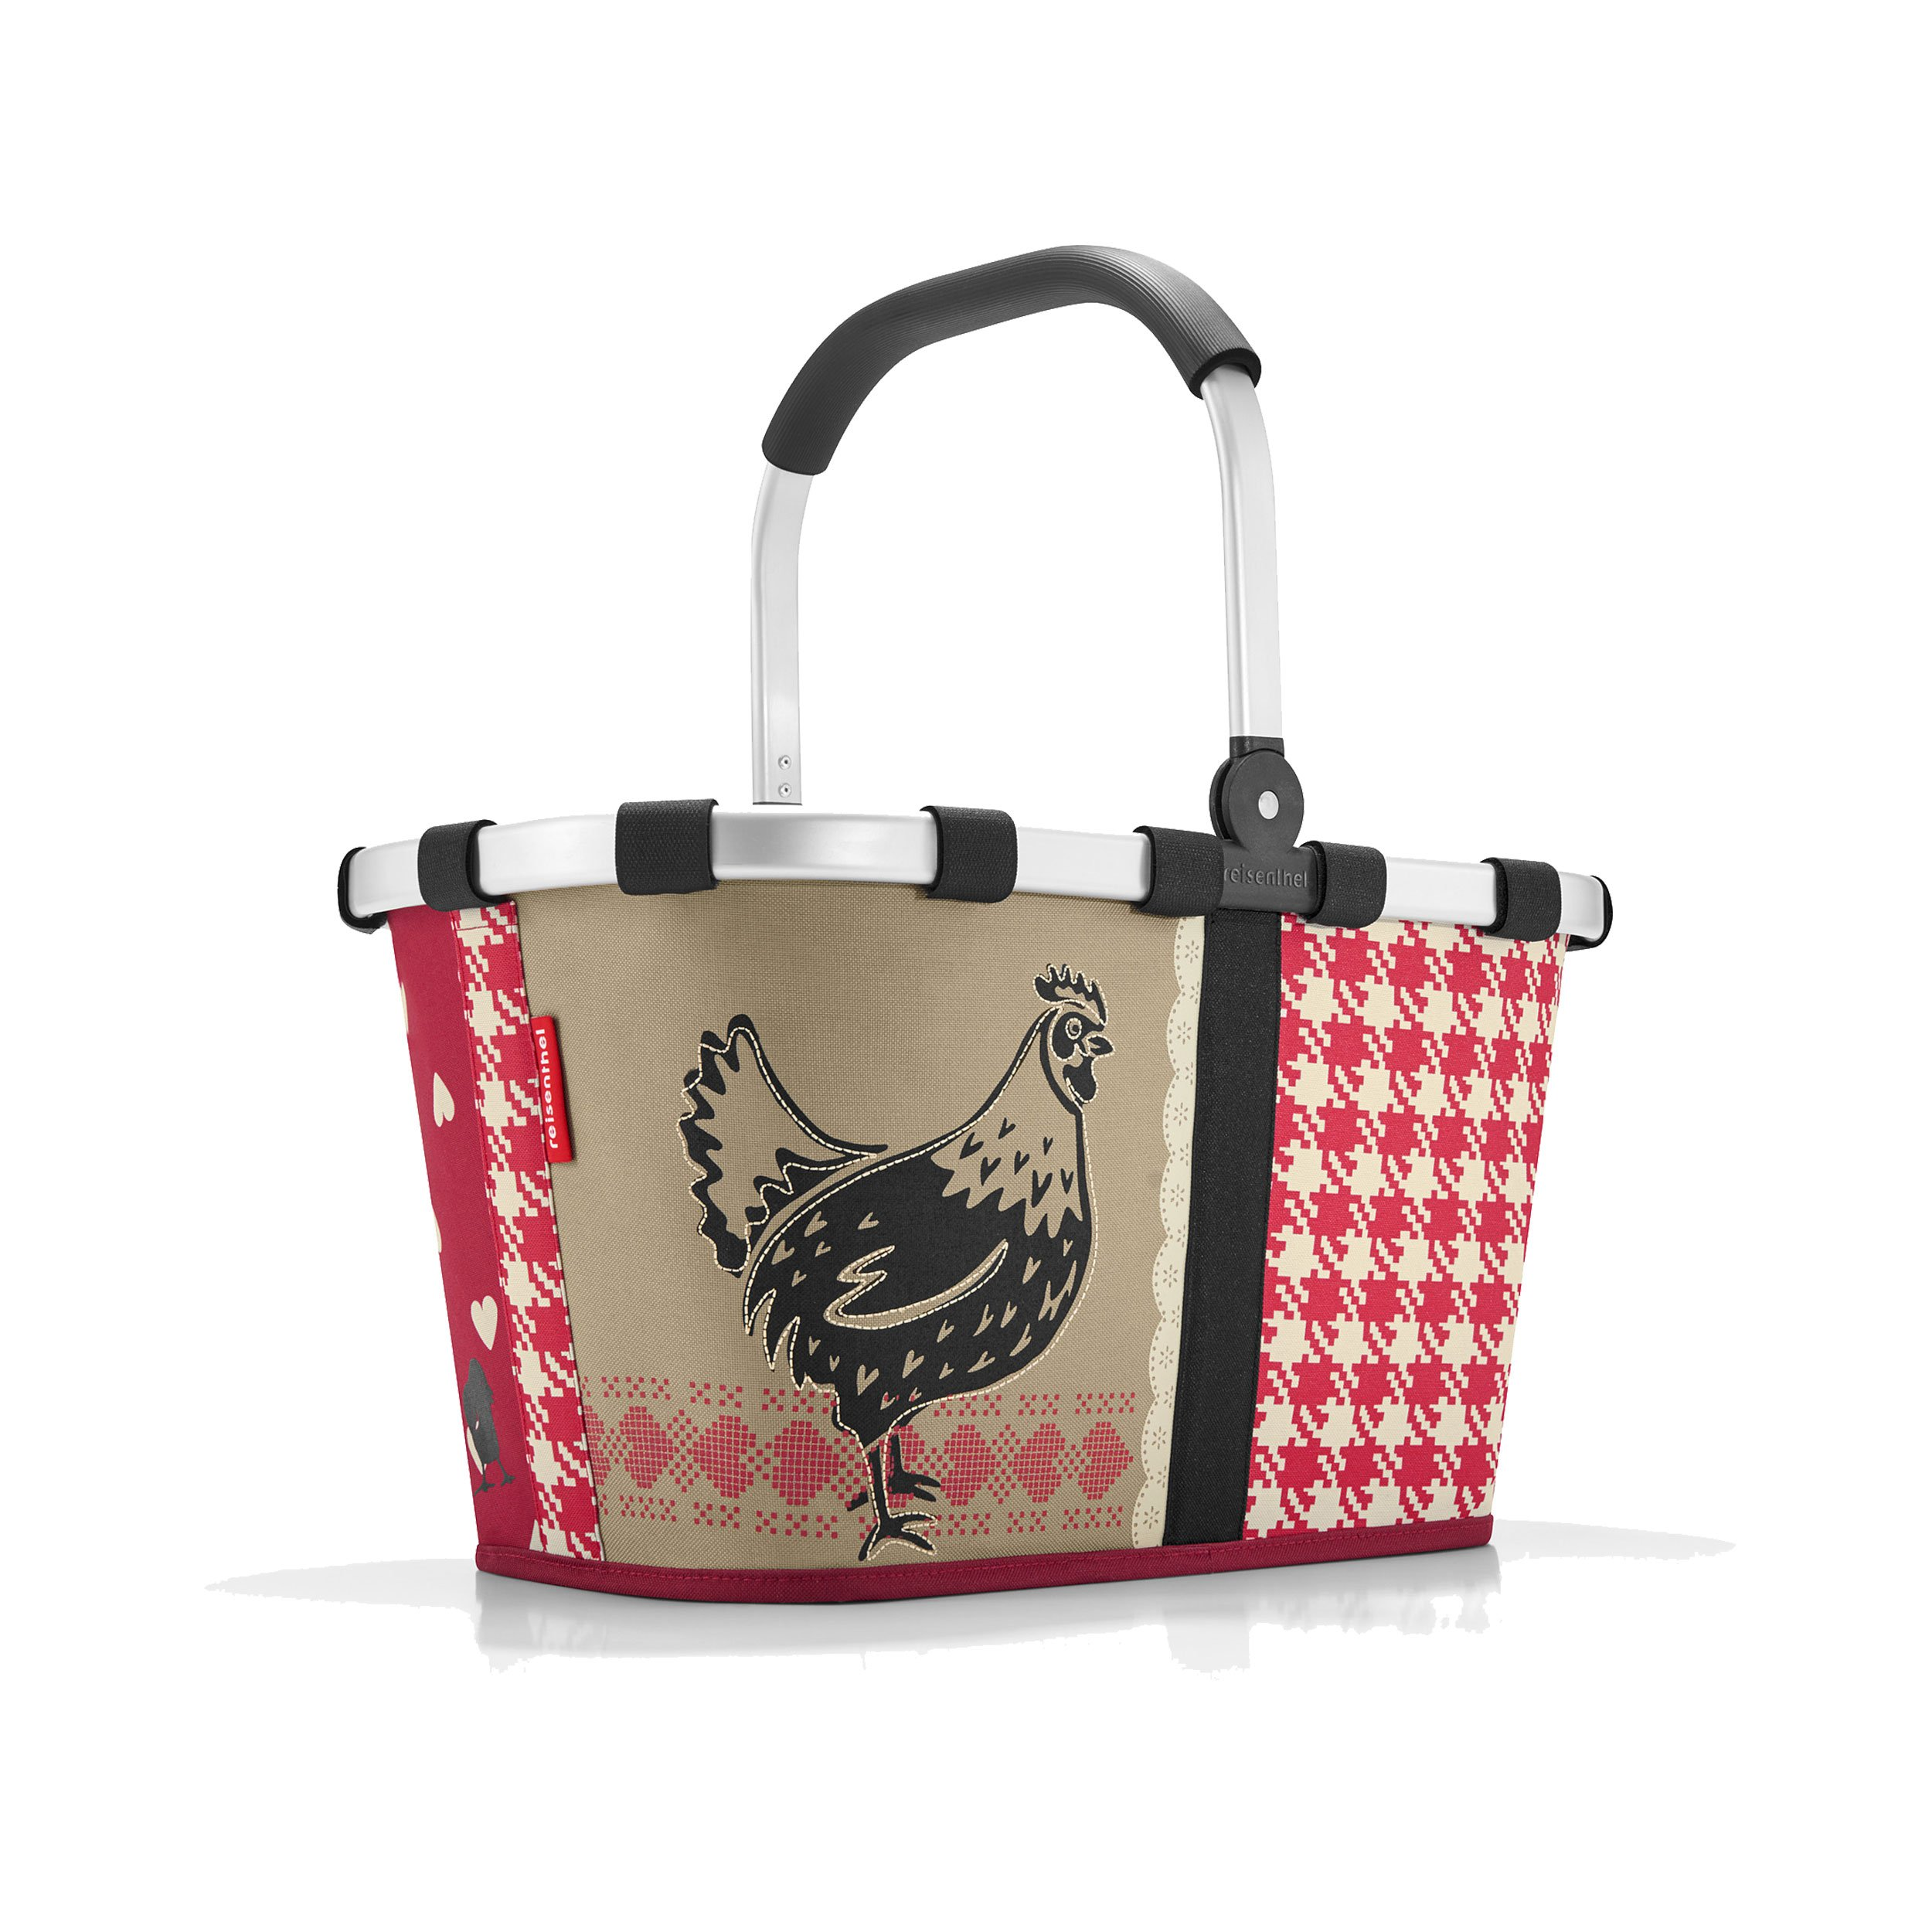 reisenthel Carrybag Fabric Picnic Tote, Country, Special Edition